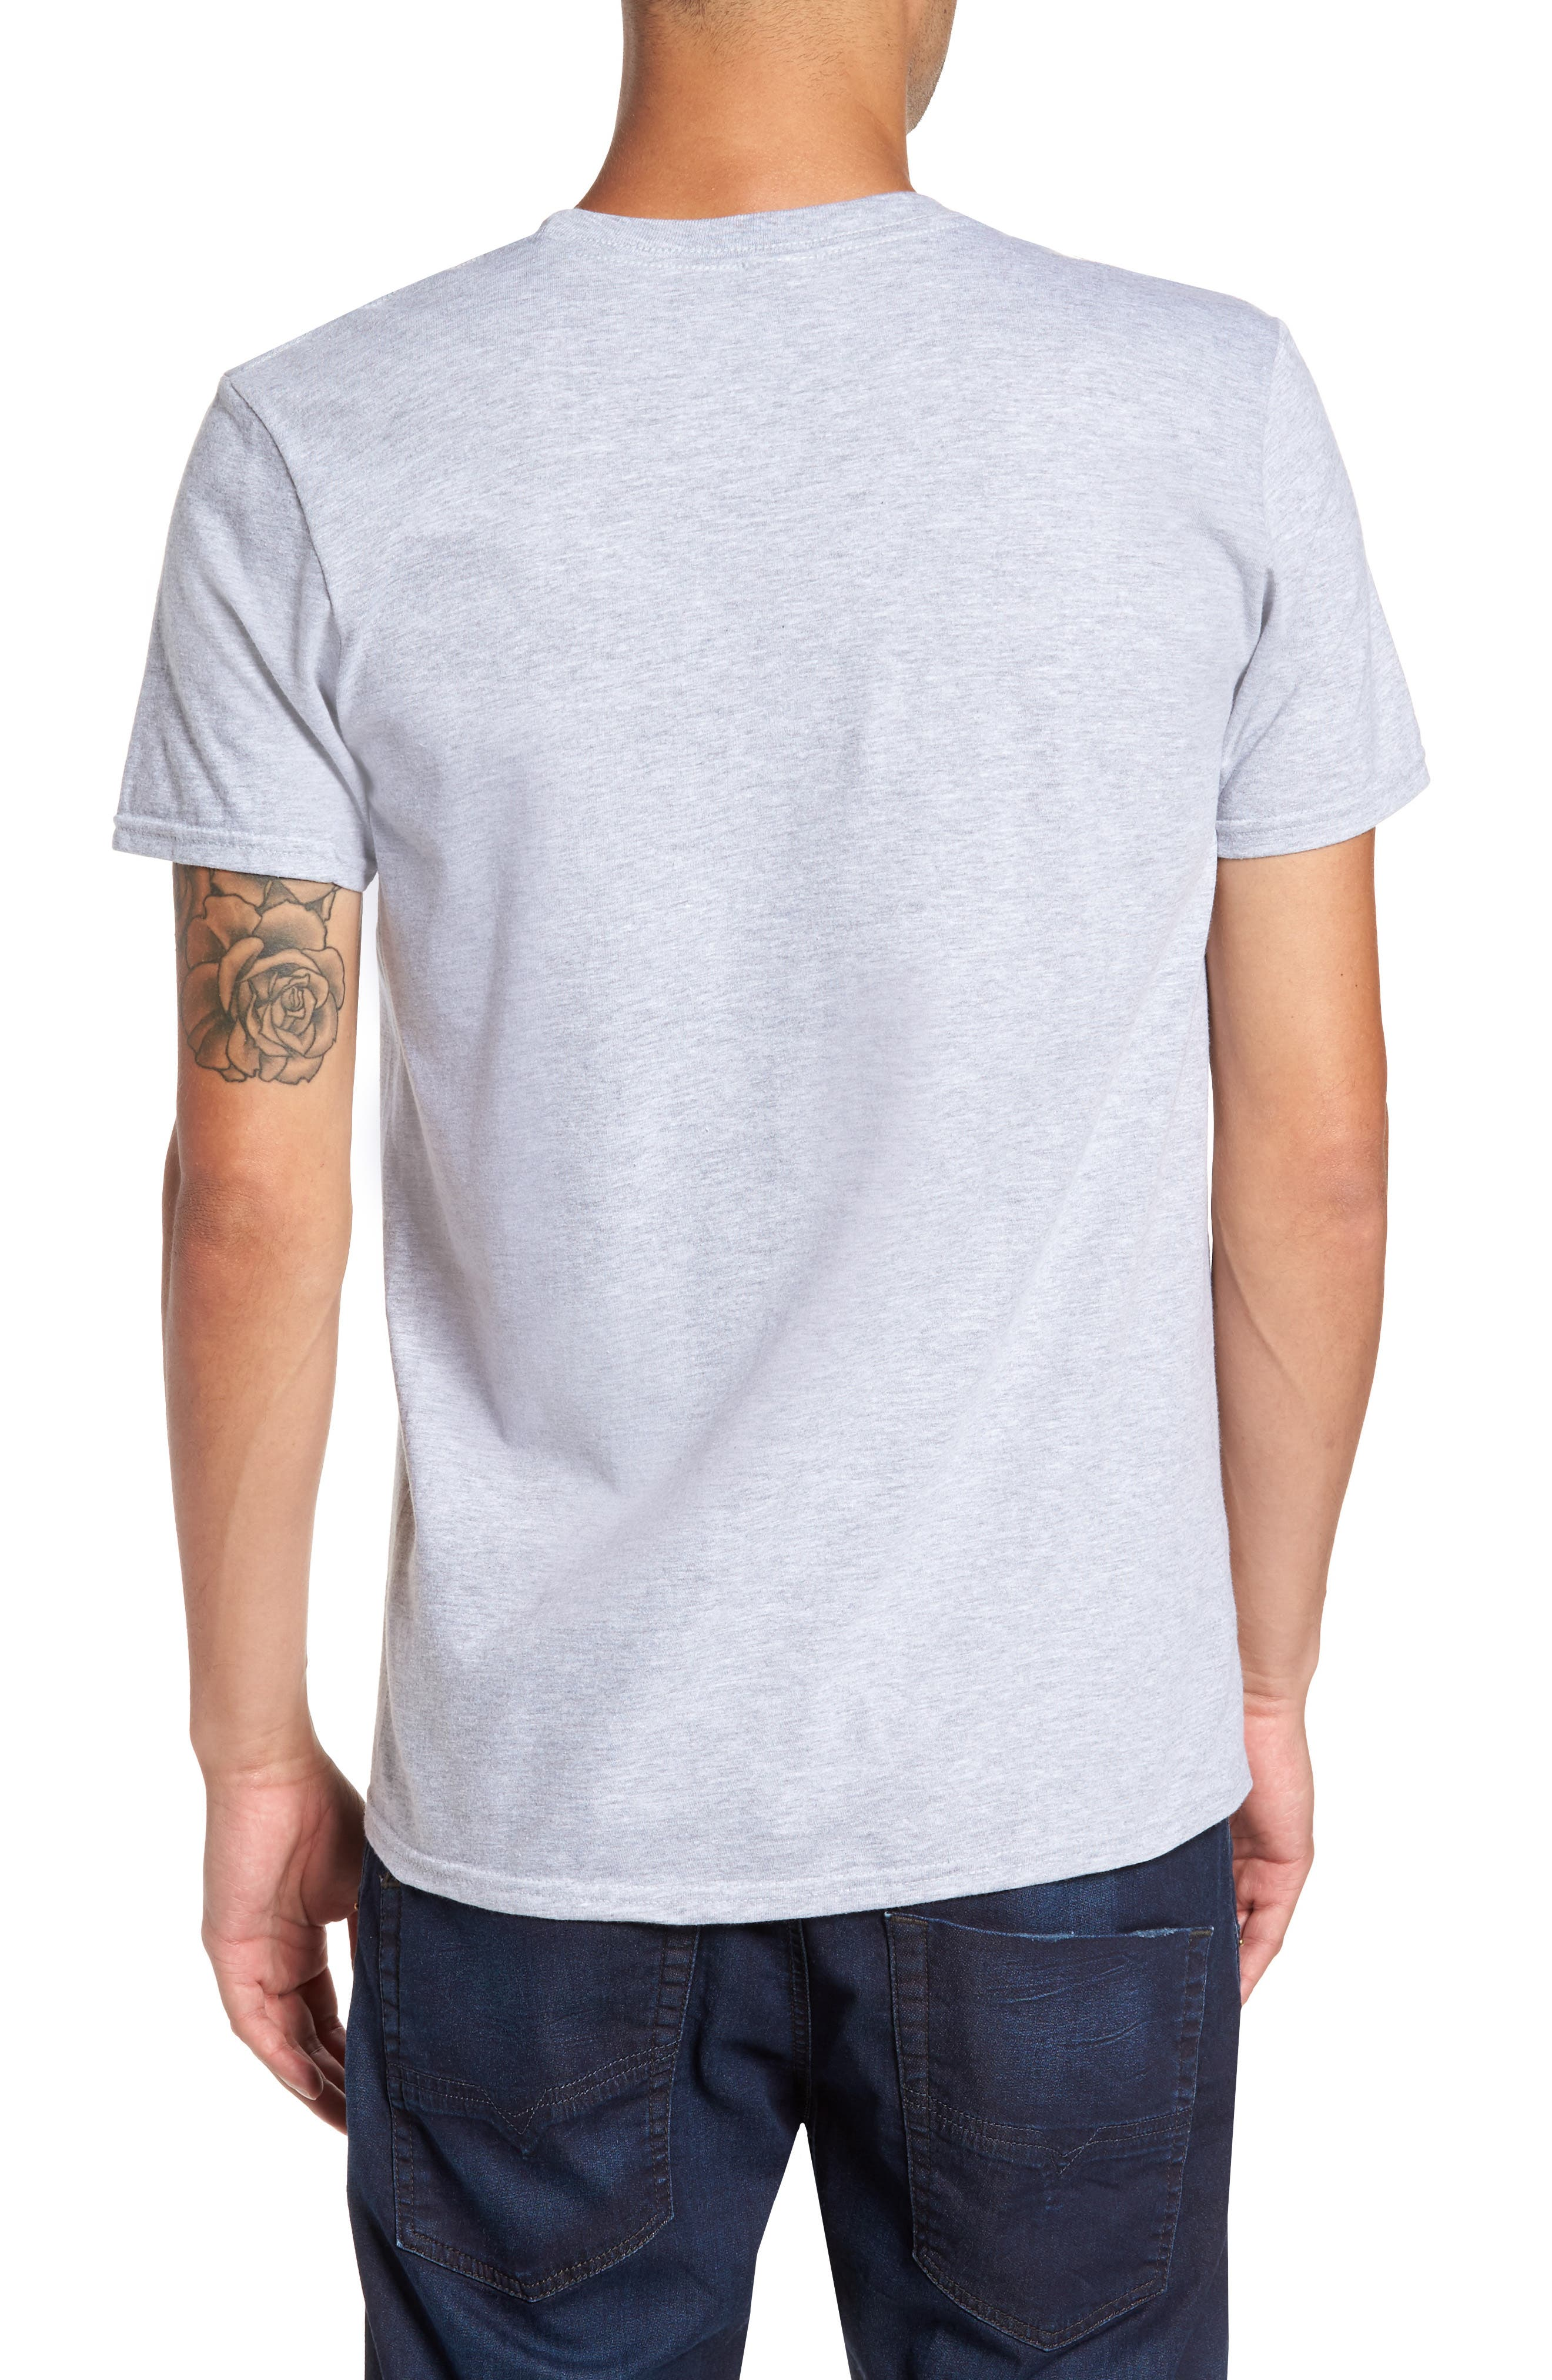 Budweiser<sup>®</sup> T-Shirt,                             Alternate thumbnail 2, color,                             Grey Bud Surfboards